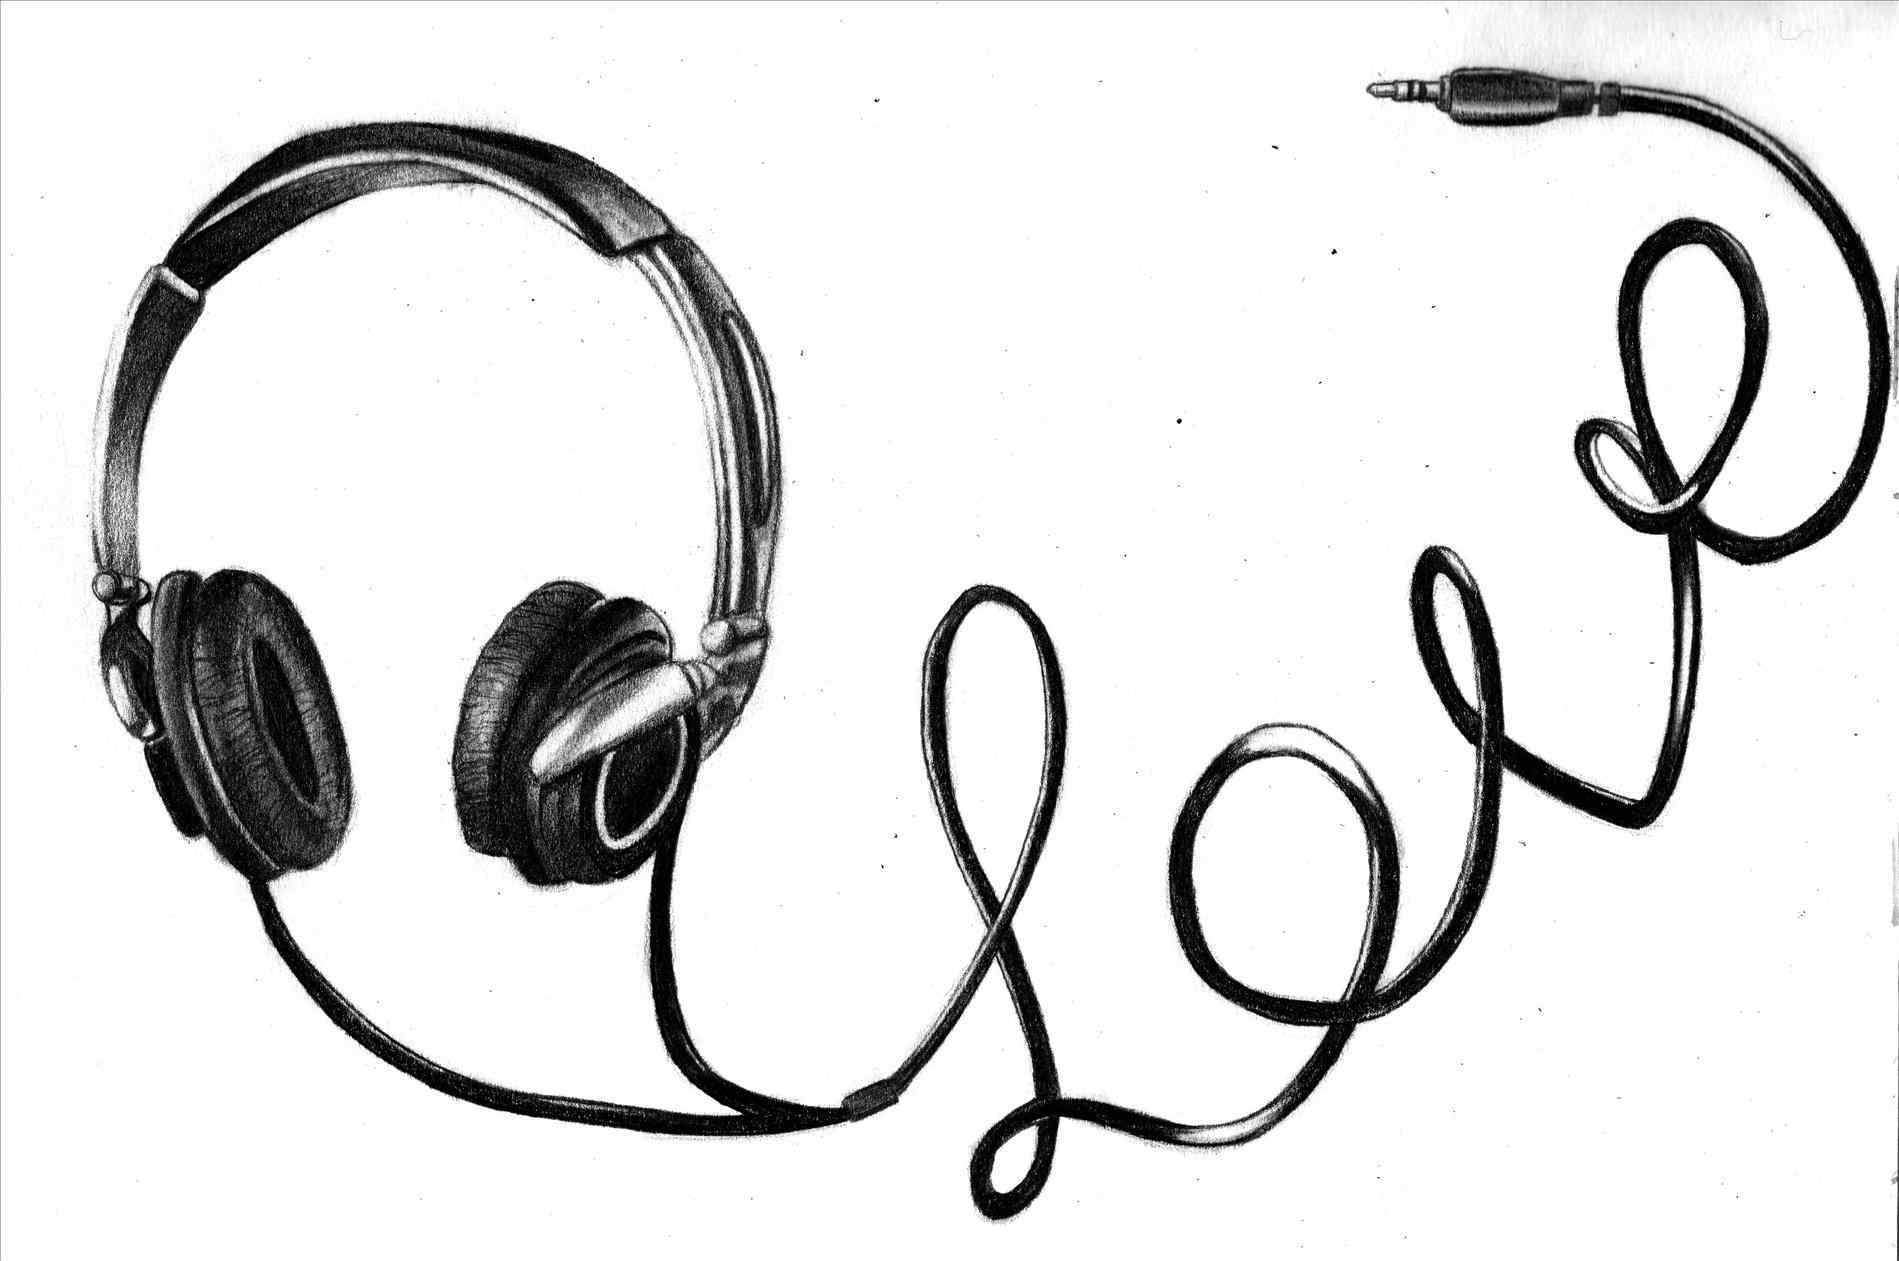 1899x1261 The Headphones Music Drawings Hottest Wedding Songs For And Dj